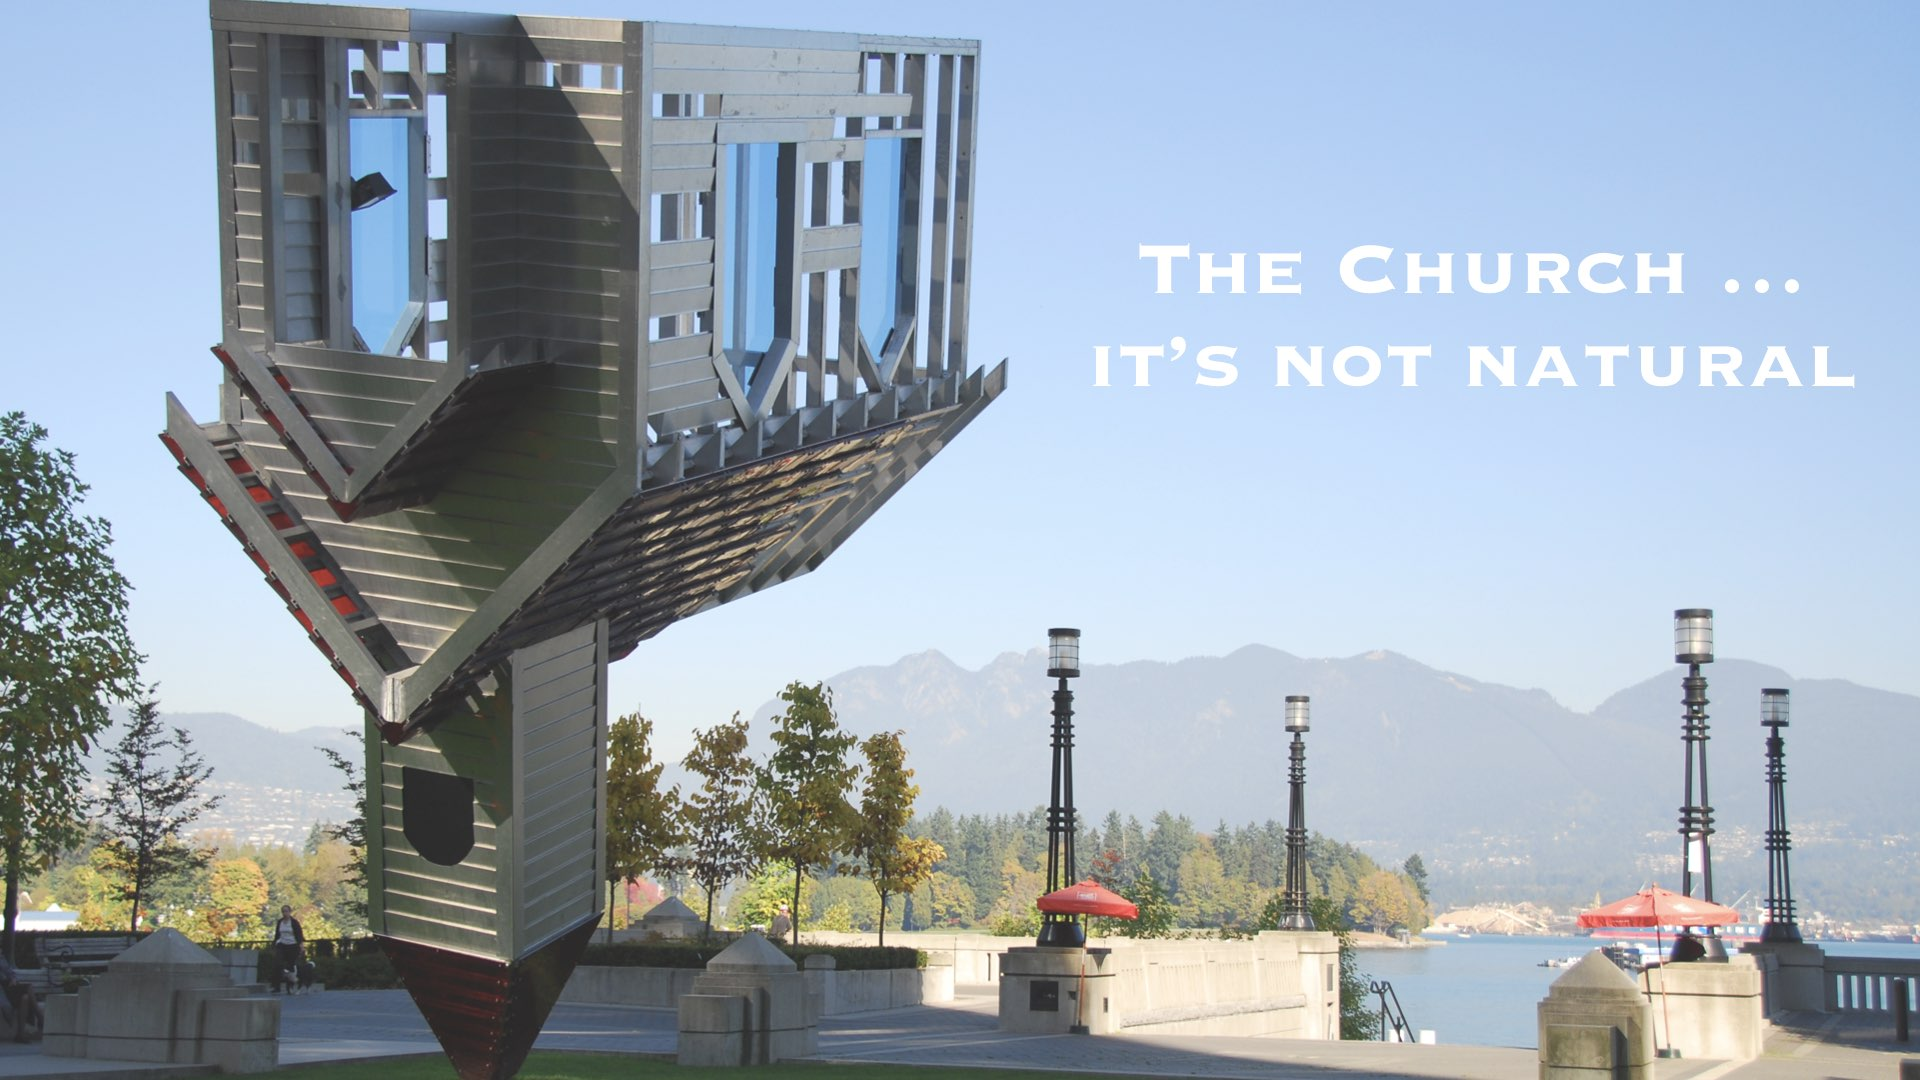 Church - not natural [header].001.jpeg